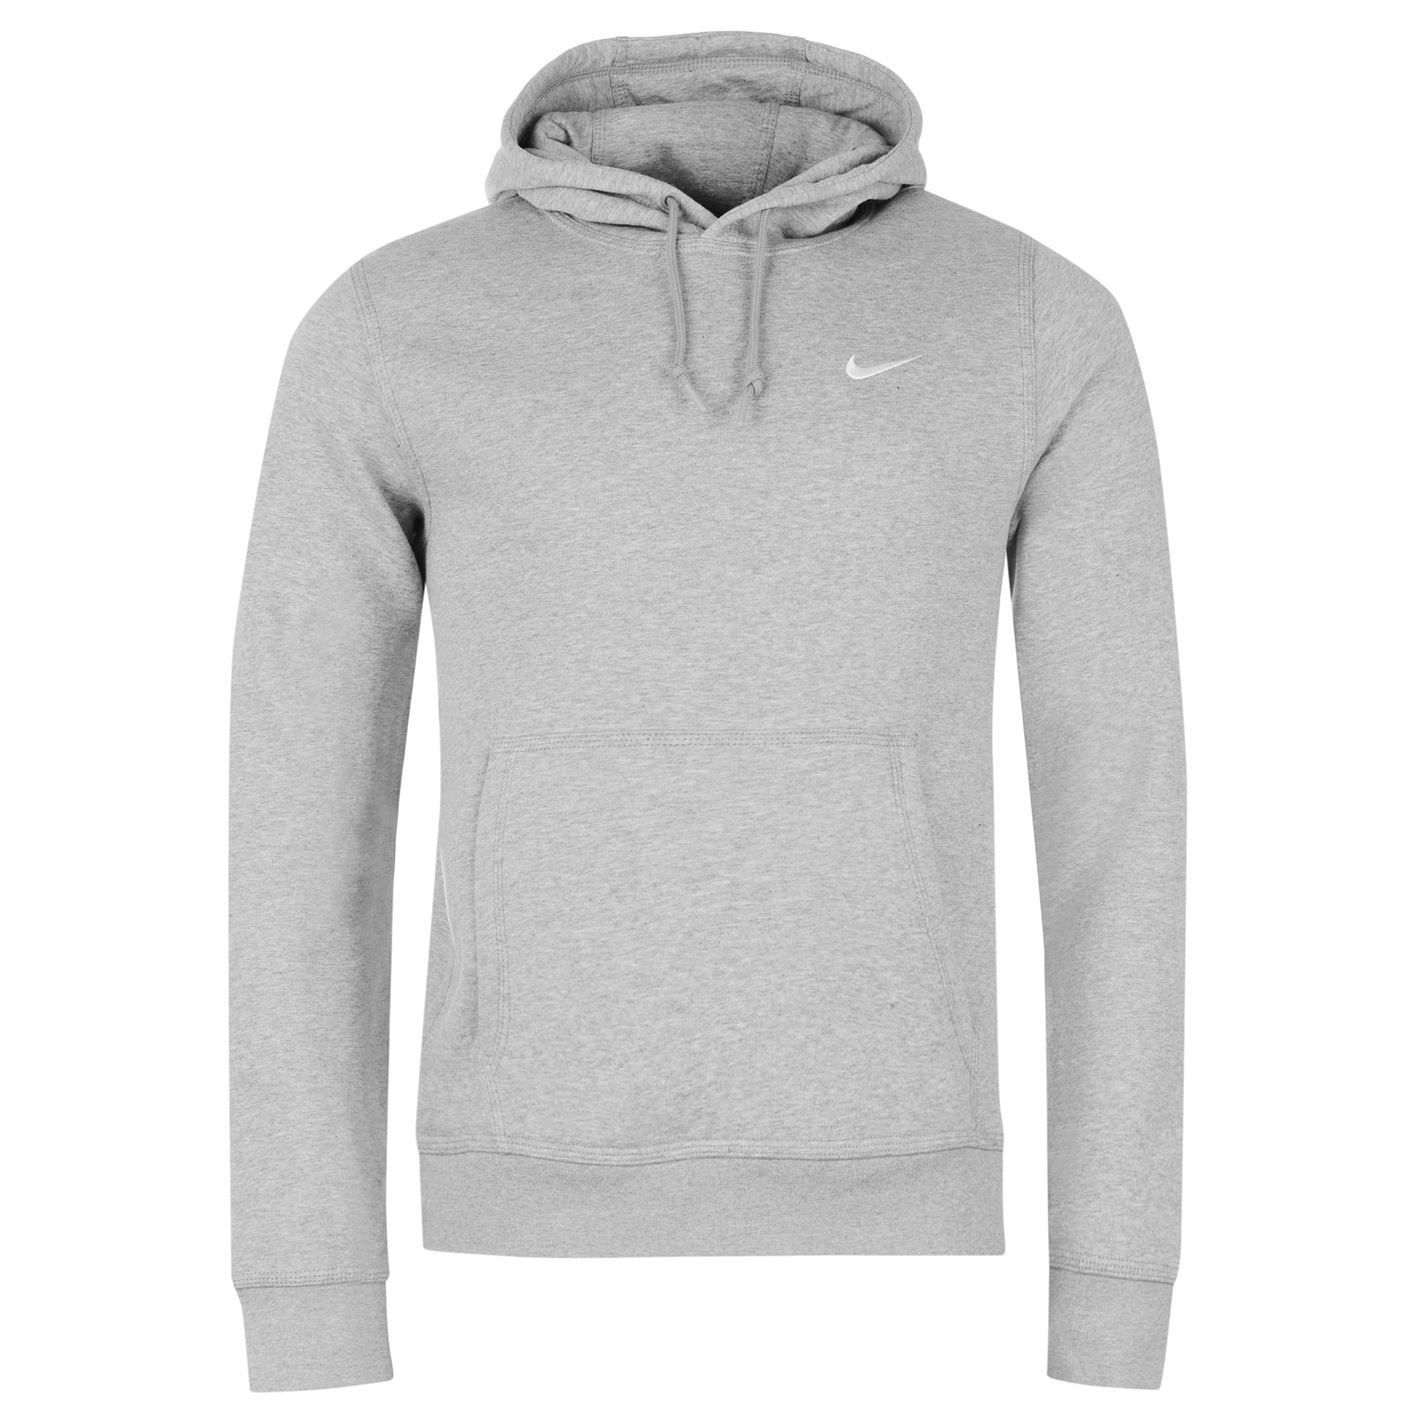 Nike-Fundamentals-Fleece-Lined-Pullover-Hoody-Mens-OTH-Hoodie-Sweatshirt-Sweater thumbnail 14